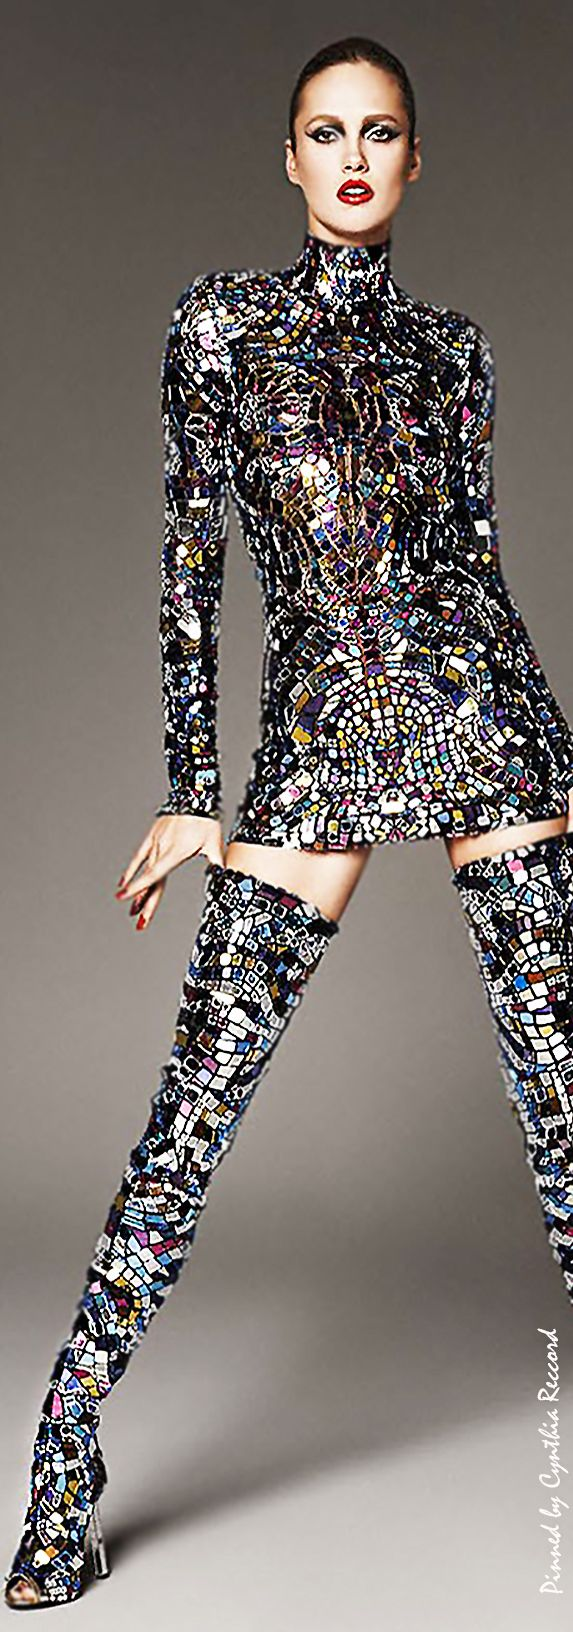 Karmen Pedaru in Tom Fords Multicolor broken-mirror Mini Dress  Thigh-High Boots SS 2014 | cynthia reccord